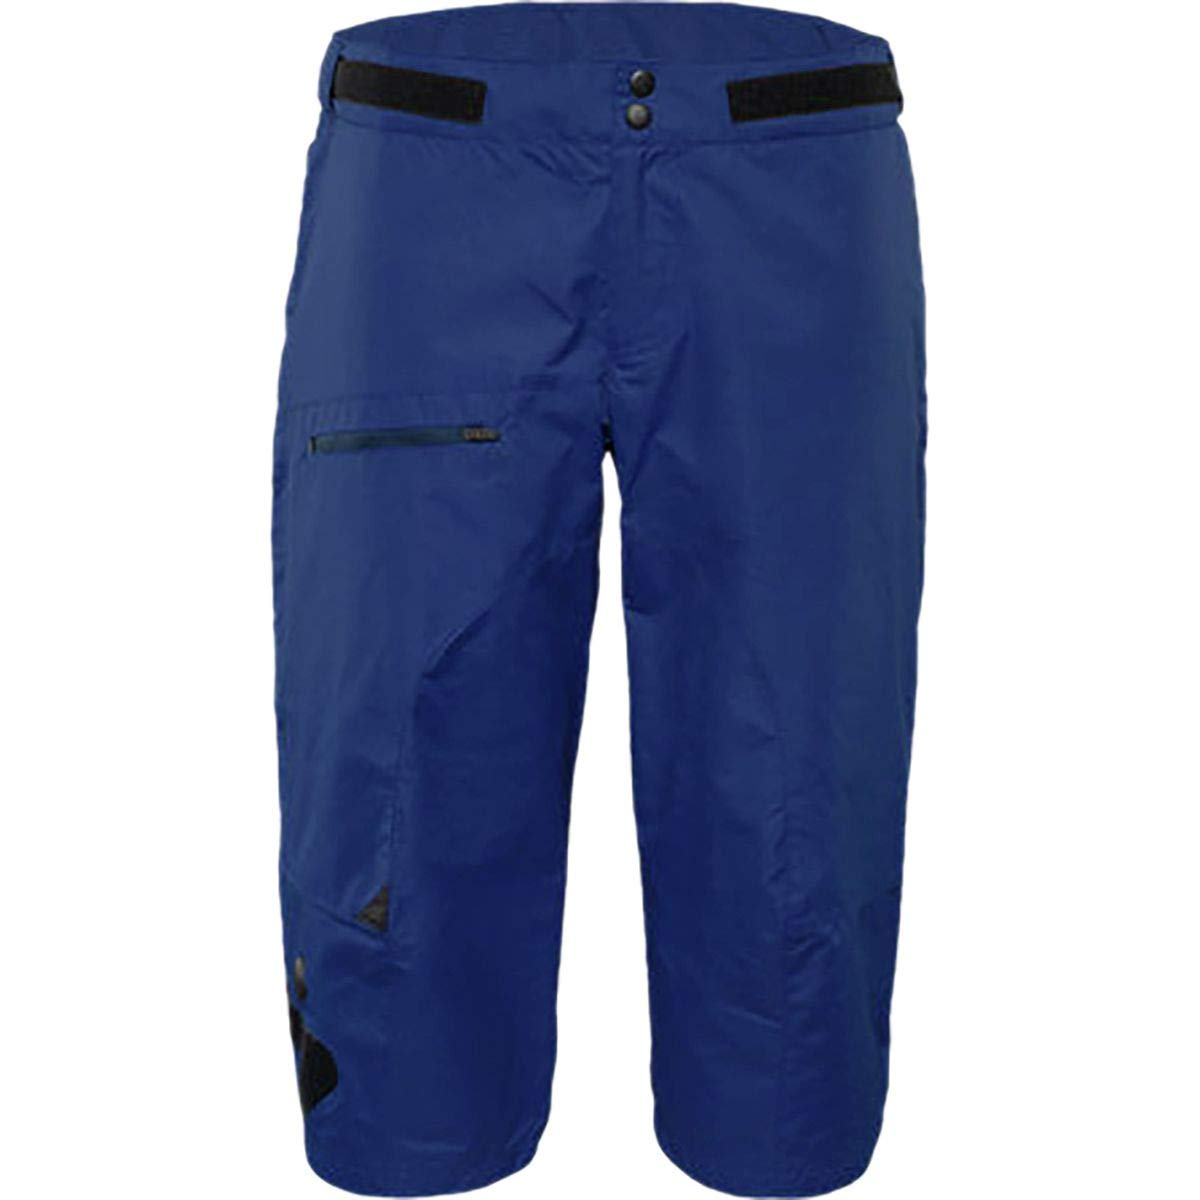 Sweet Protection PANTS メンズ Small Race Blue B07P9T32FS